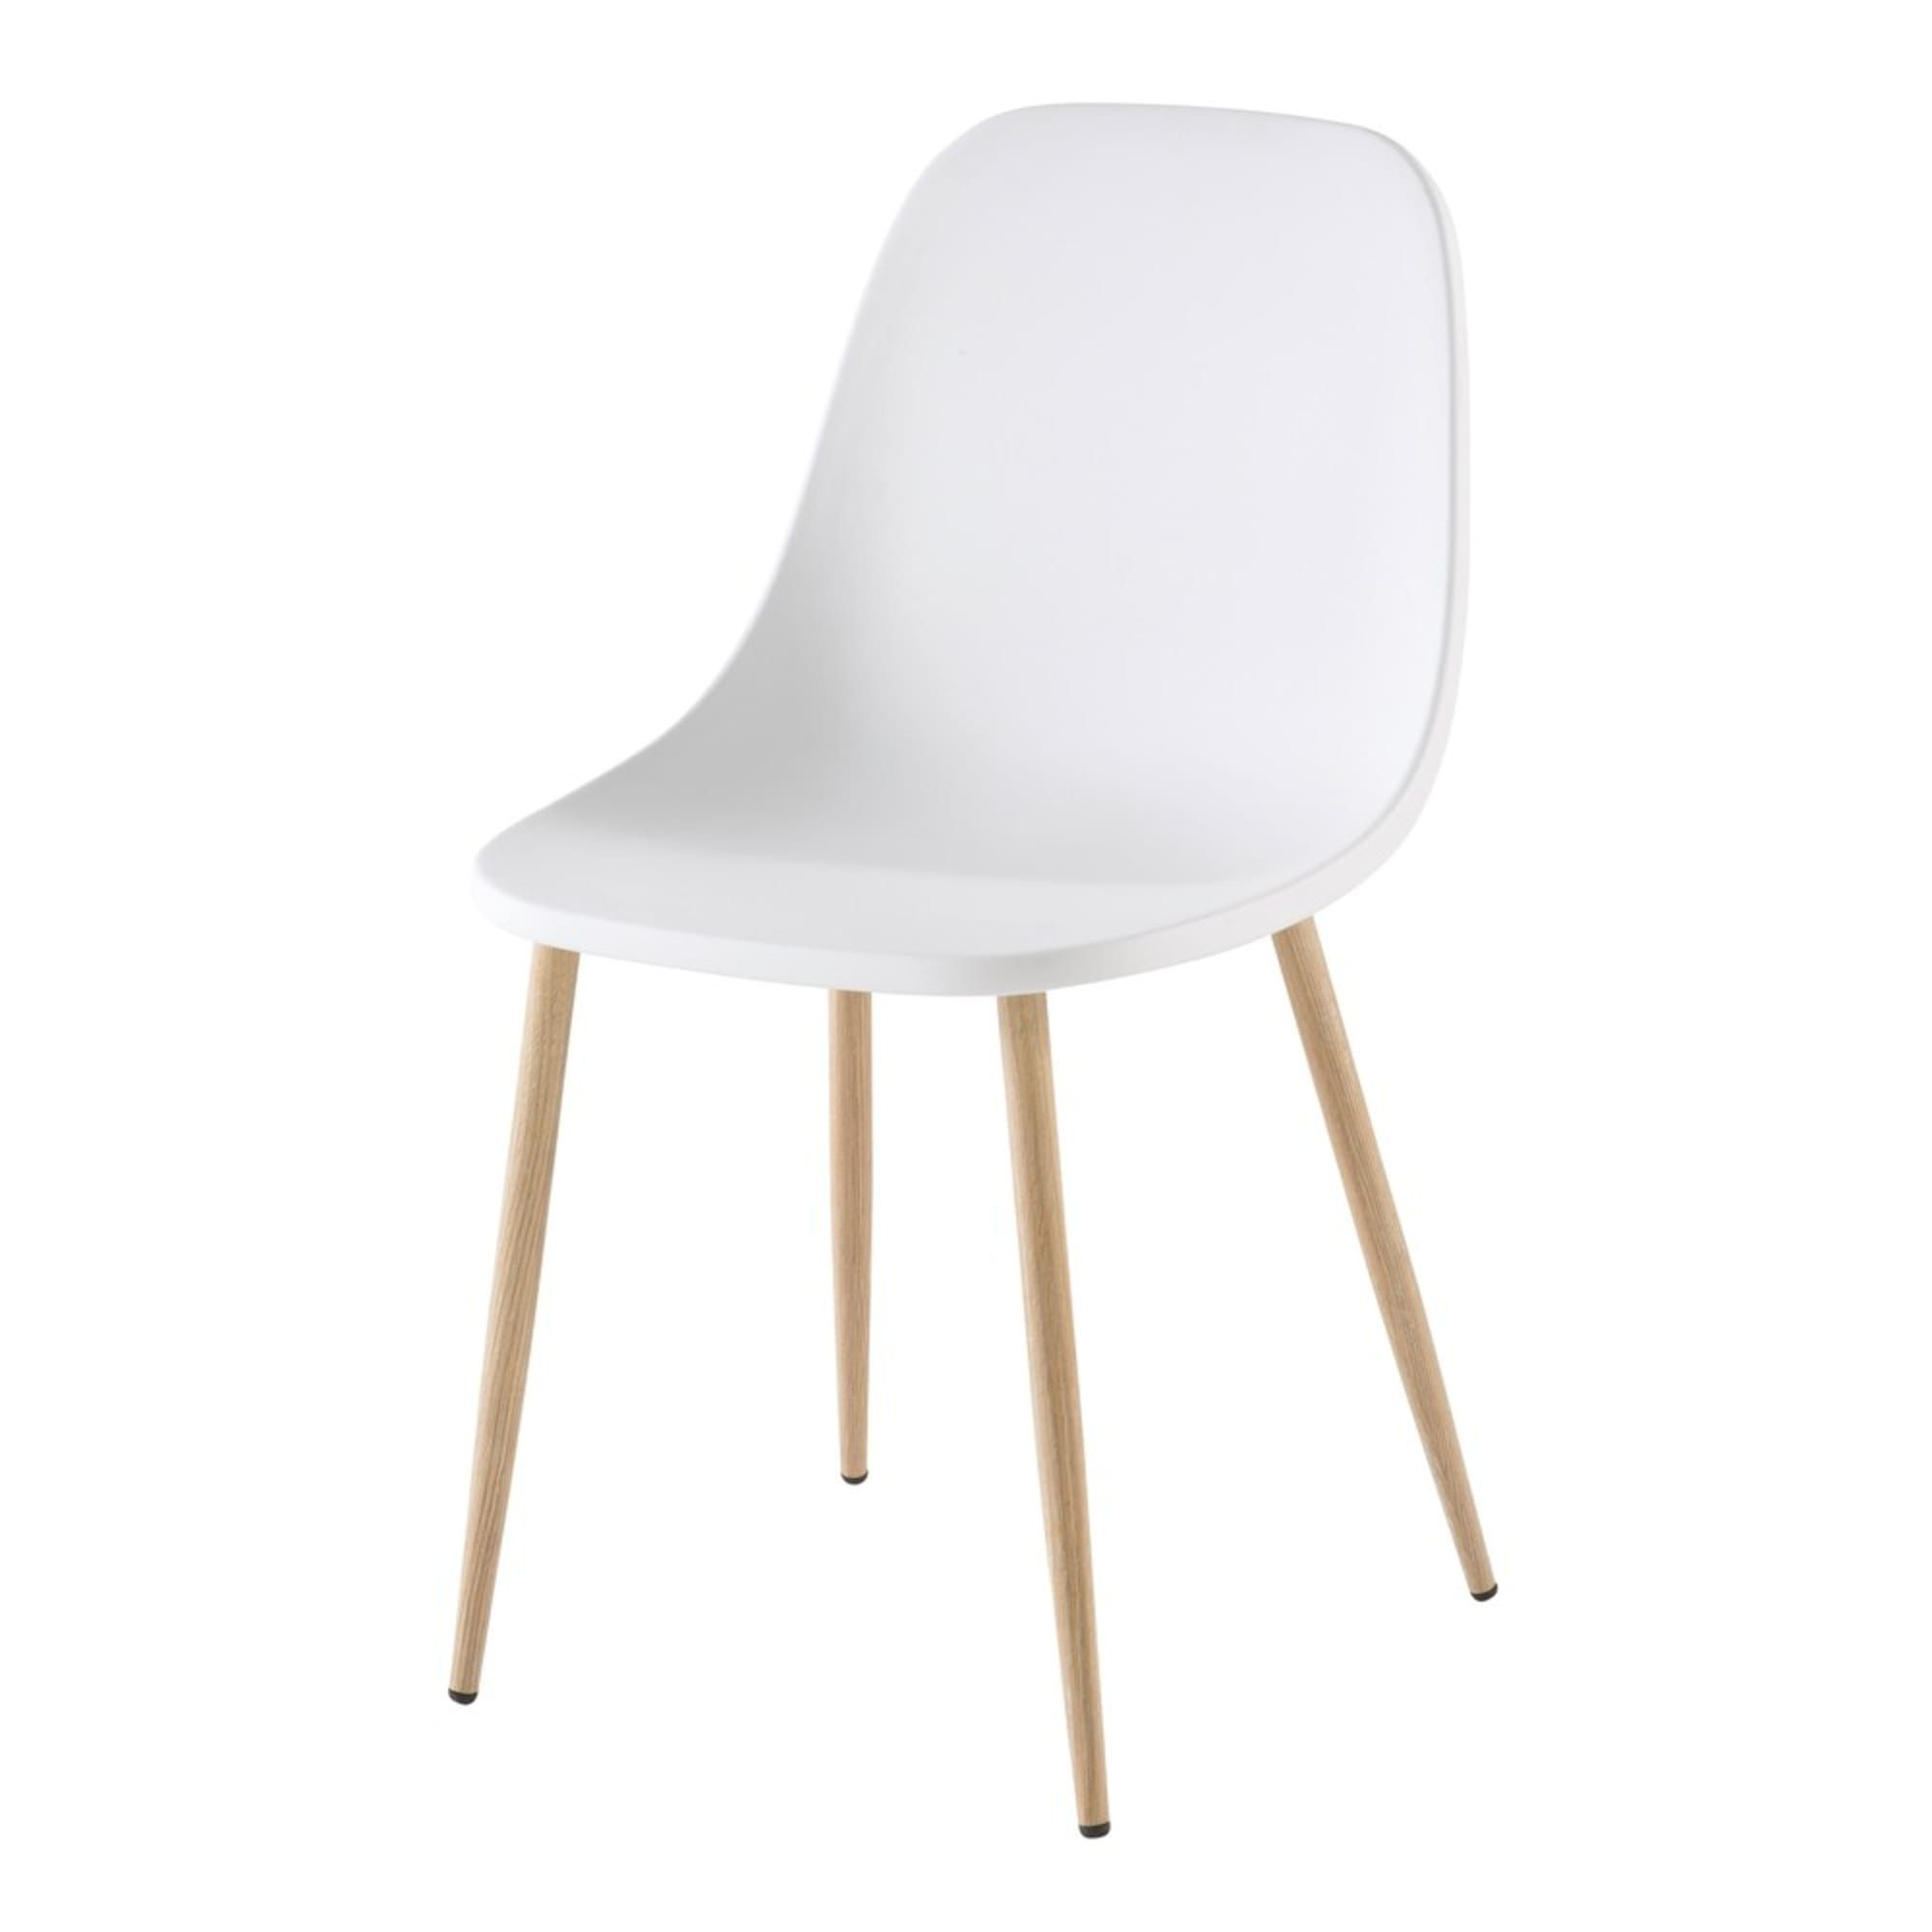 Contemporary White Chair Maisons Du Monde Chaise Contemporaine Chaise Scandinave Chaise